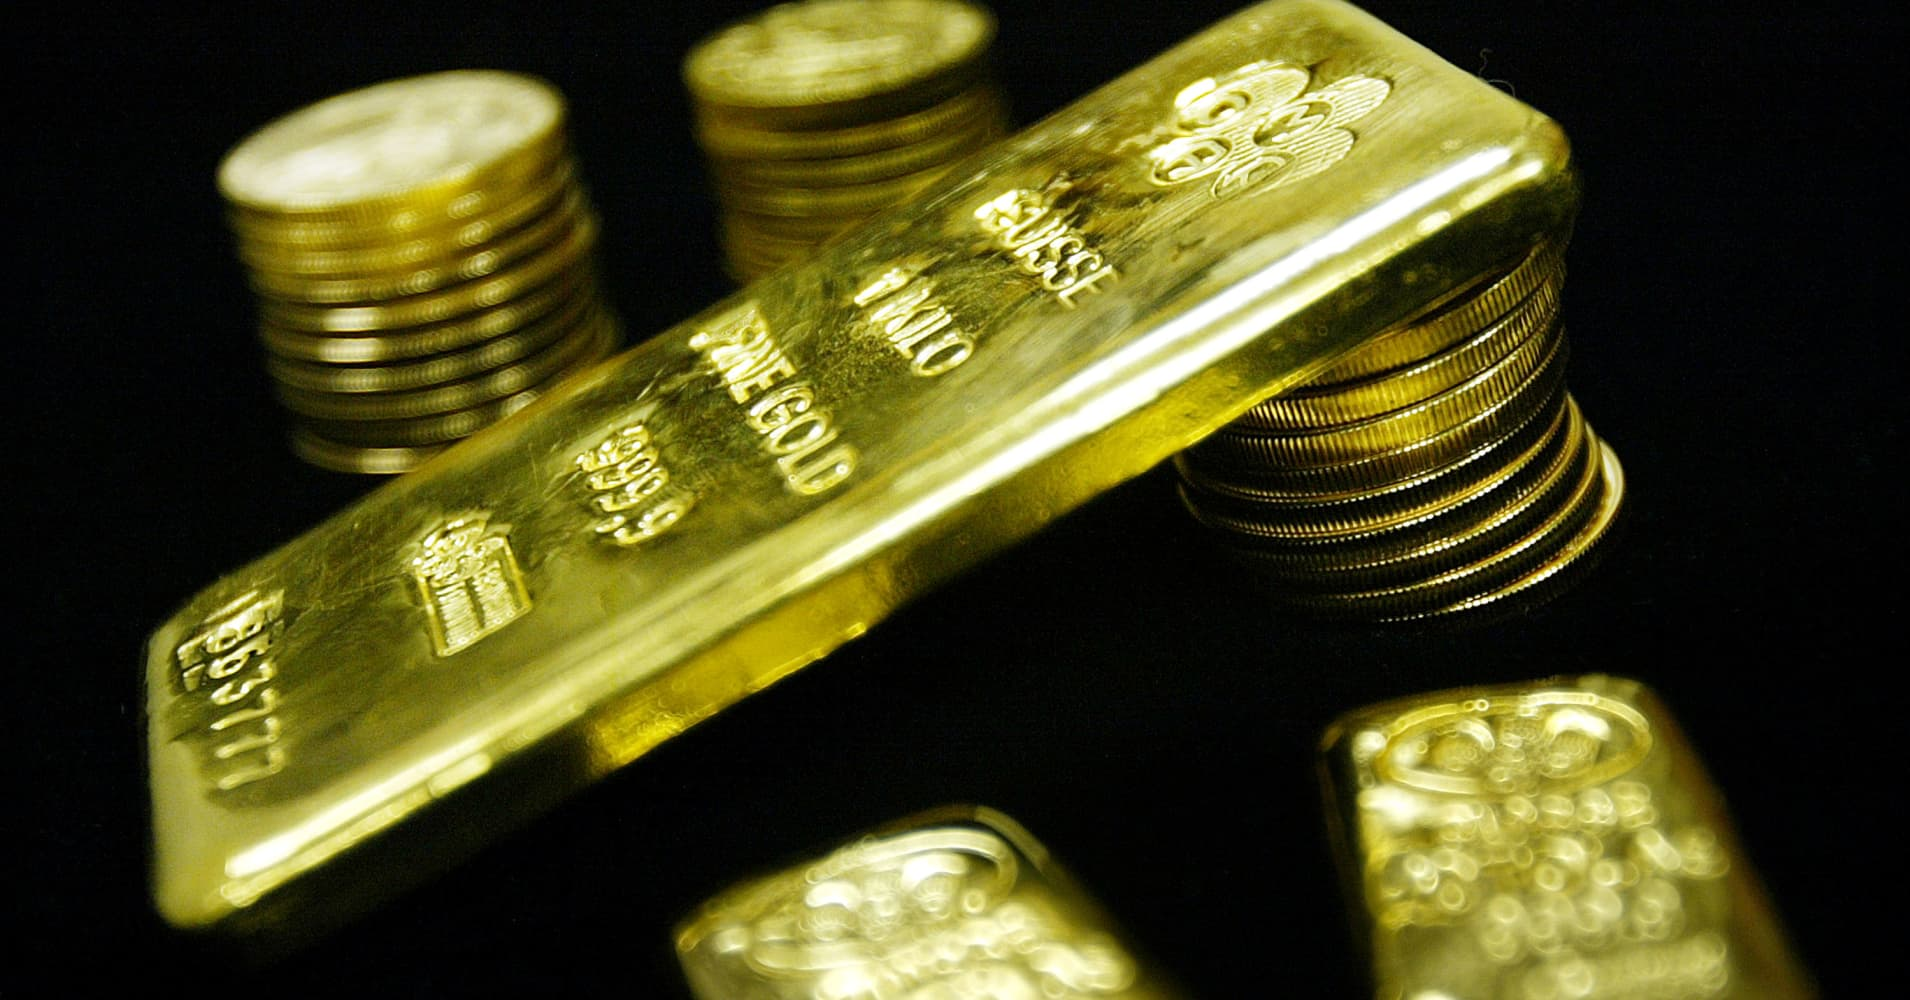 Gold inches up on easing dollar, global concerns